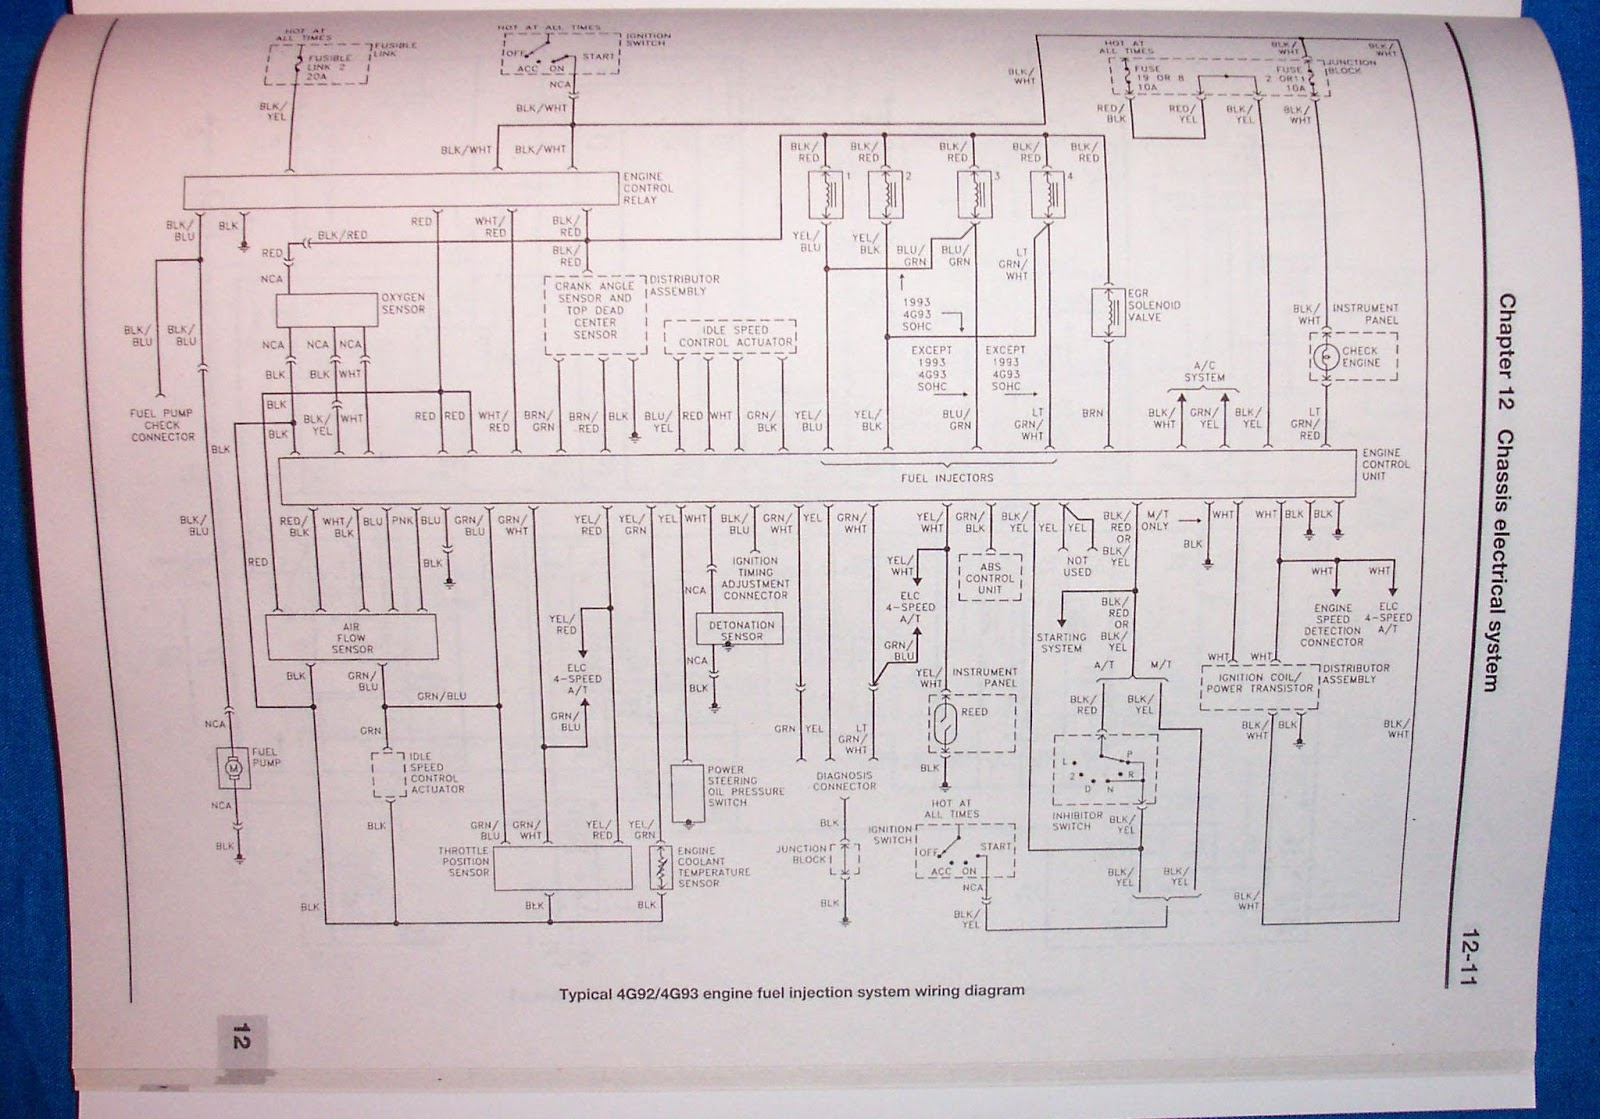 medium resolution of mitsubishi 4g92 engine diagram wiring diagram operations mitsubishi 4g92 engine diagram